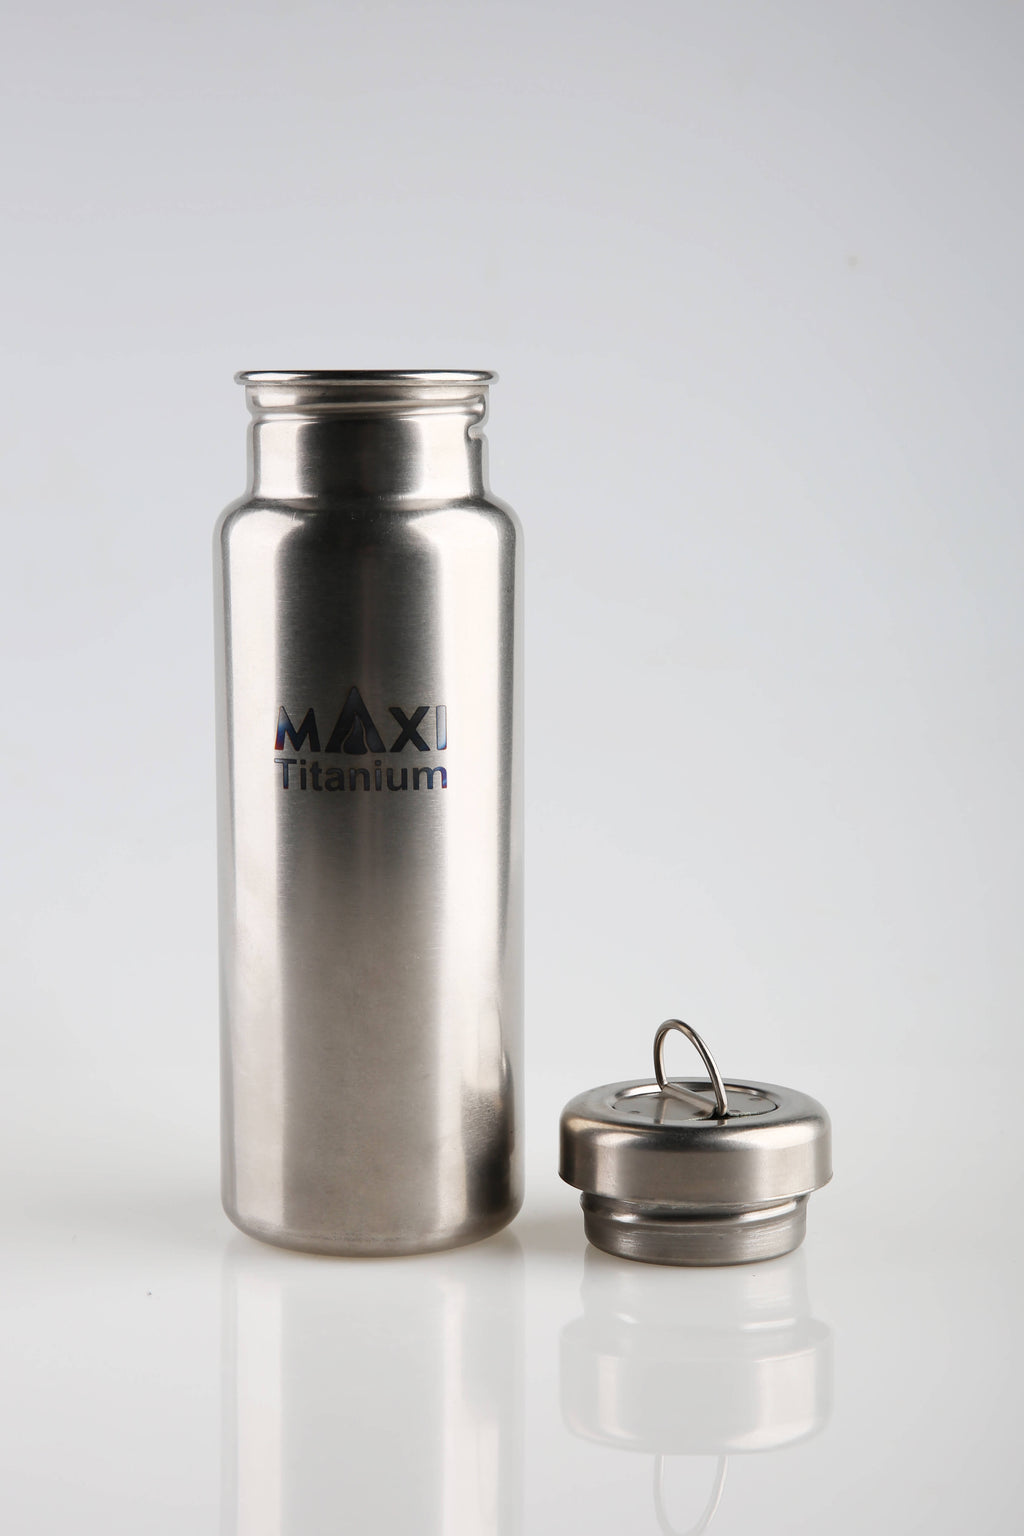 Maxi 800ml Titanium Water Bottle  マキシチタンボトル  150g